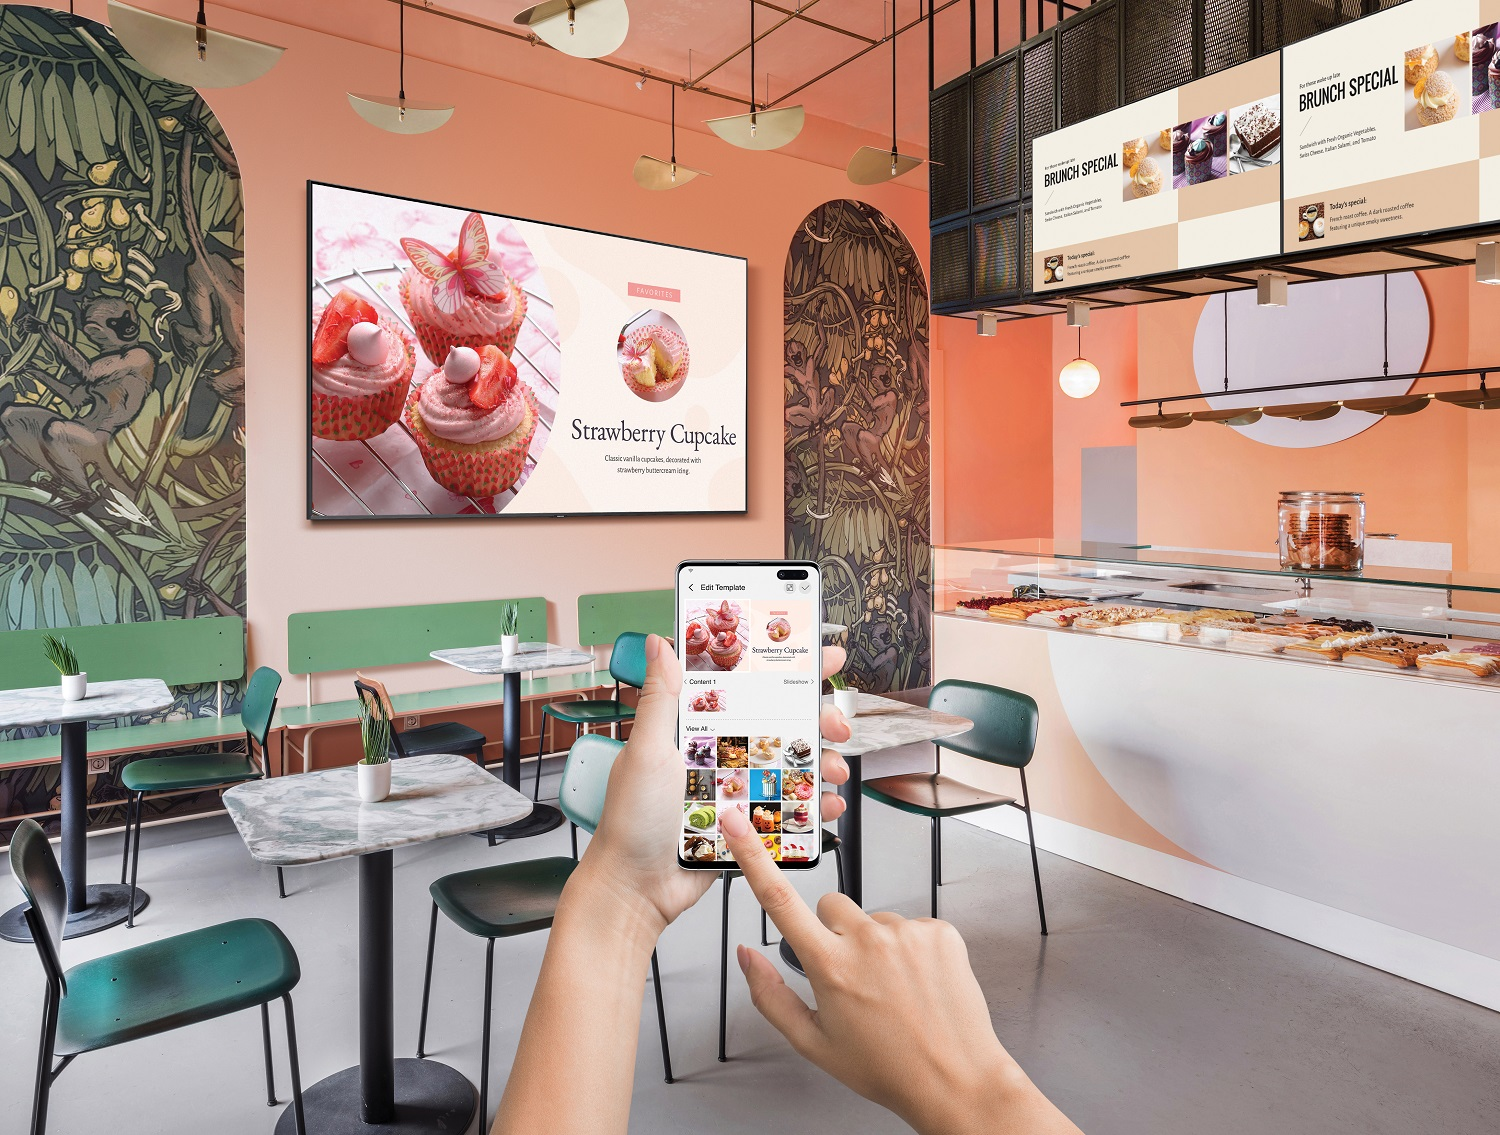 Samsung Unveils 'Business TV' - An Intuitive Display Built for Small Business